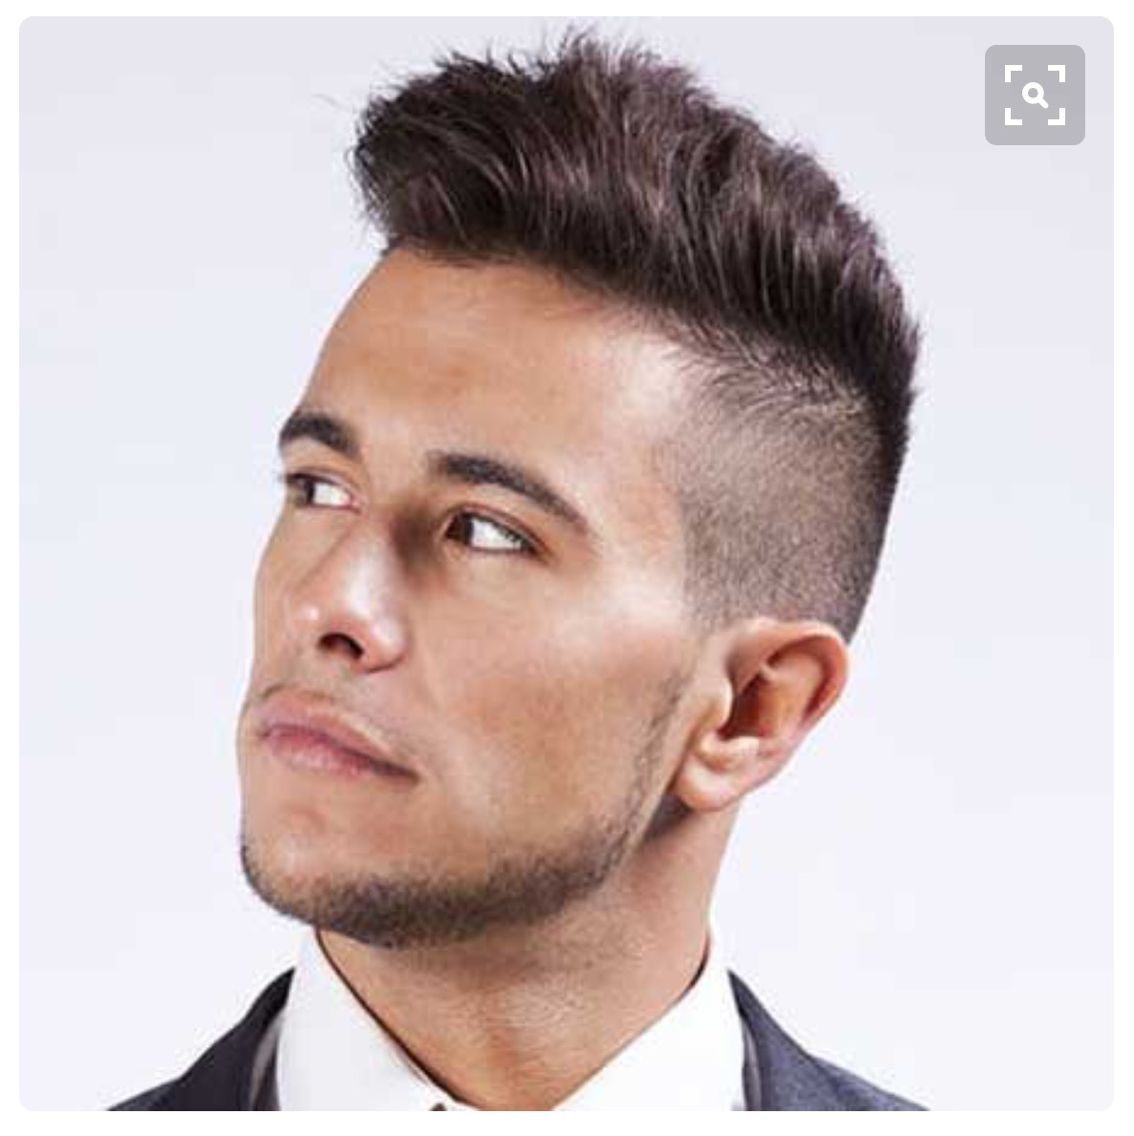 Pin By Kike Cp On Capelli Pinterest